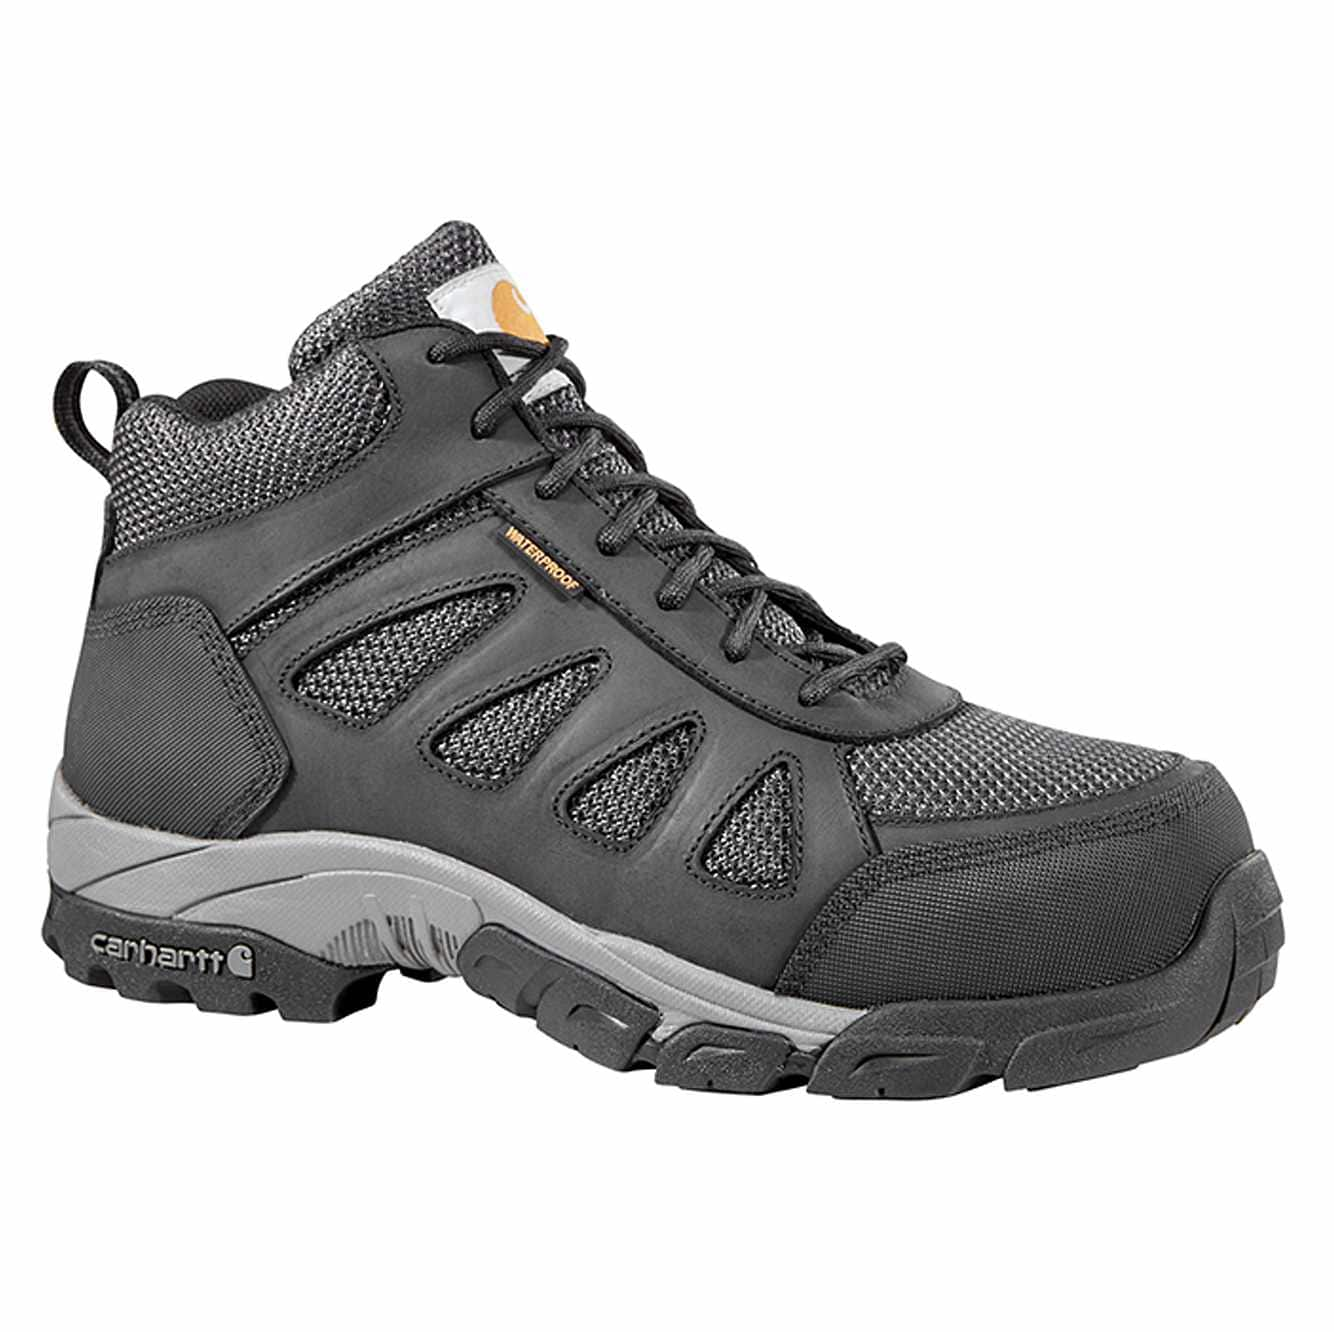 Picture of Lightweight Carbon Nano Toe Work Hiker in Black Leather and Nylon